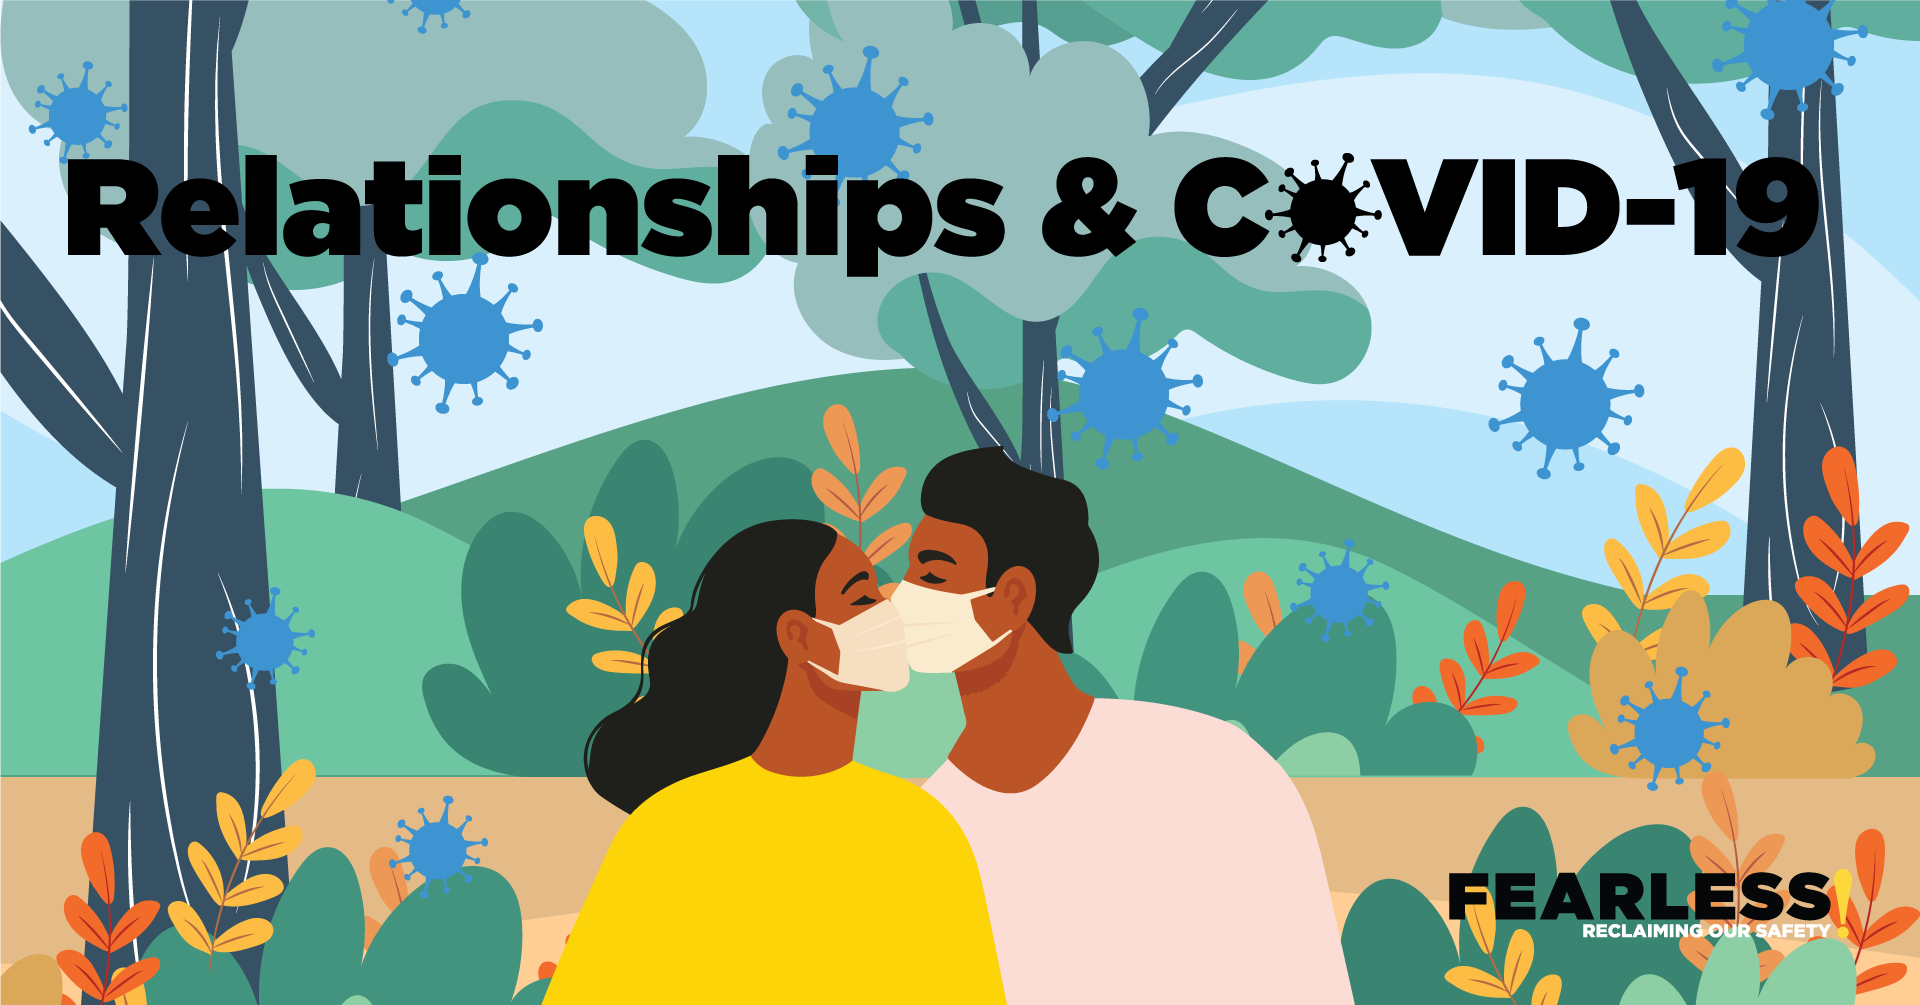 Relationships & COVID-19